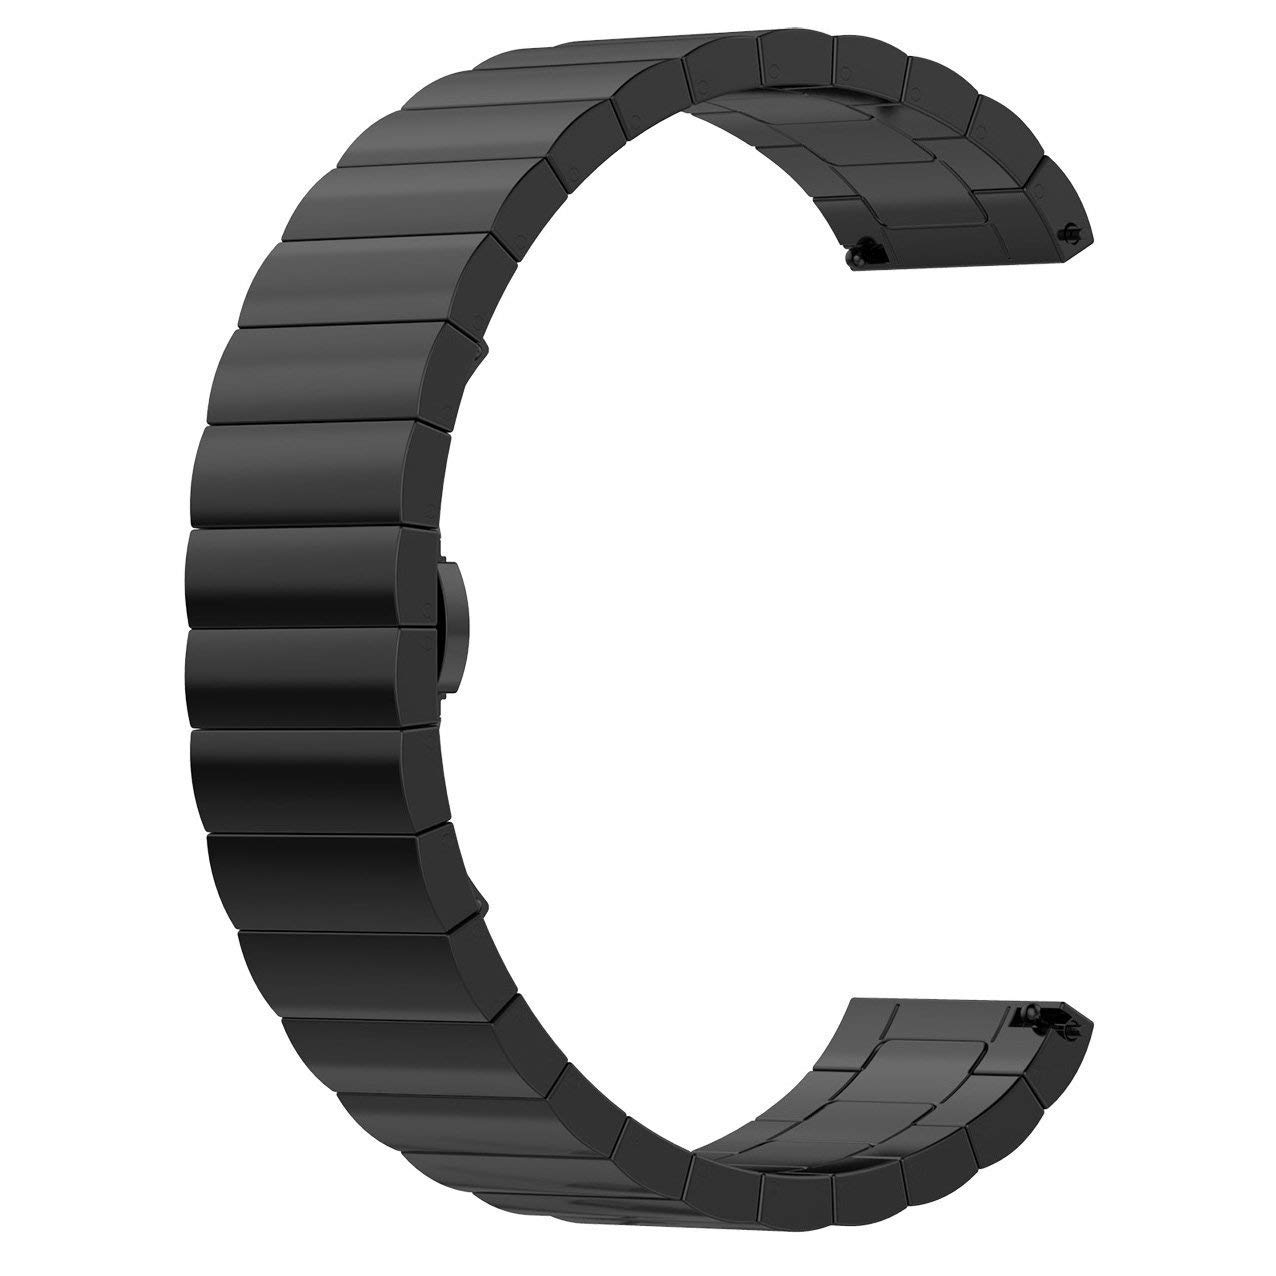 Amazon.com : ECSEM for Huawei Watch 2 W2 Sport Bands ...